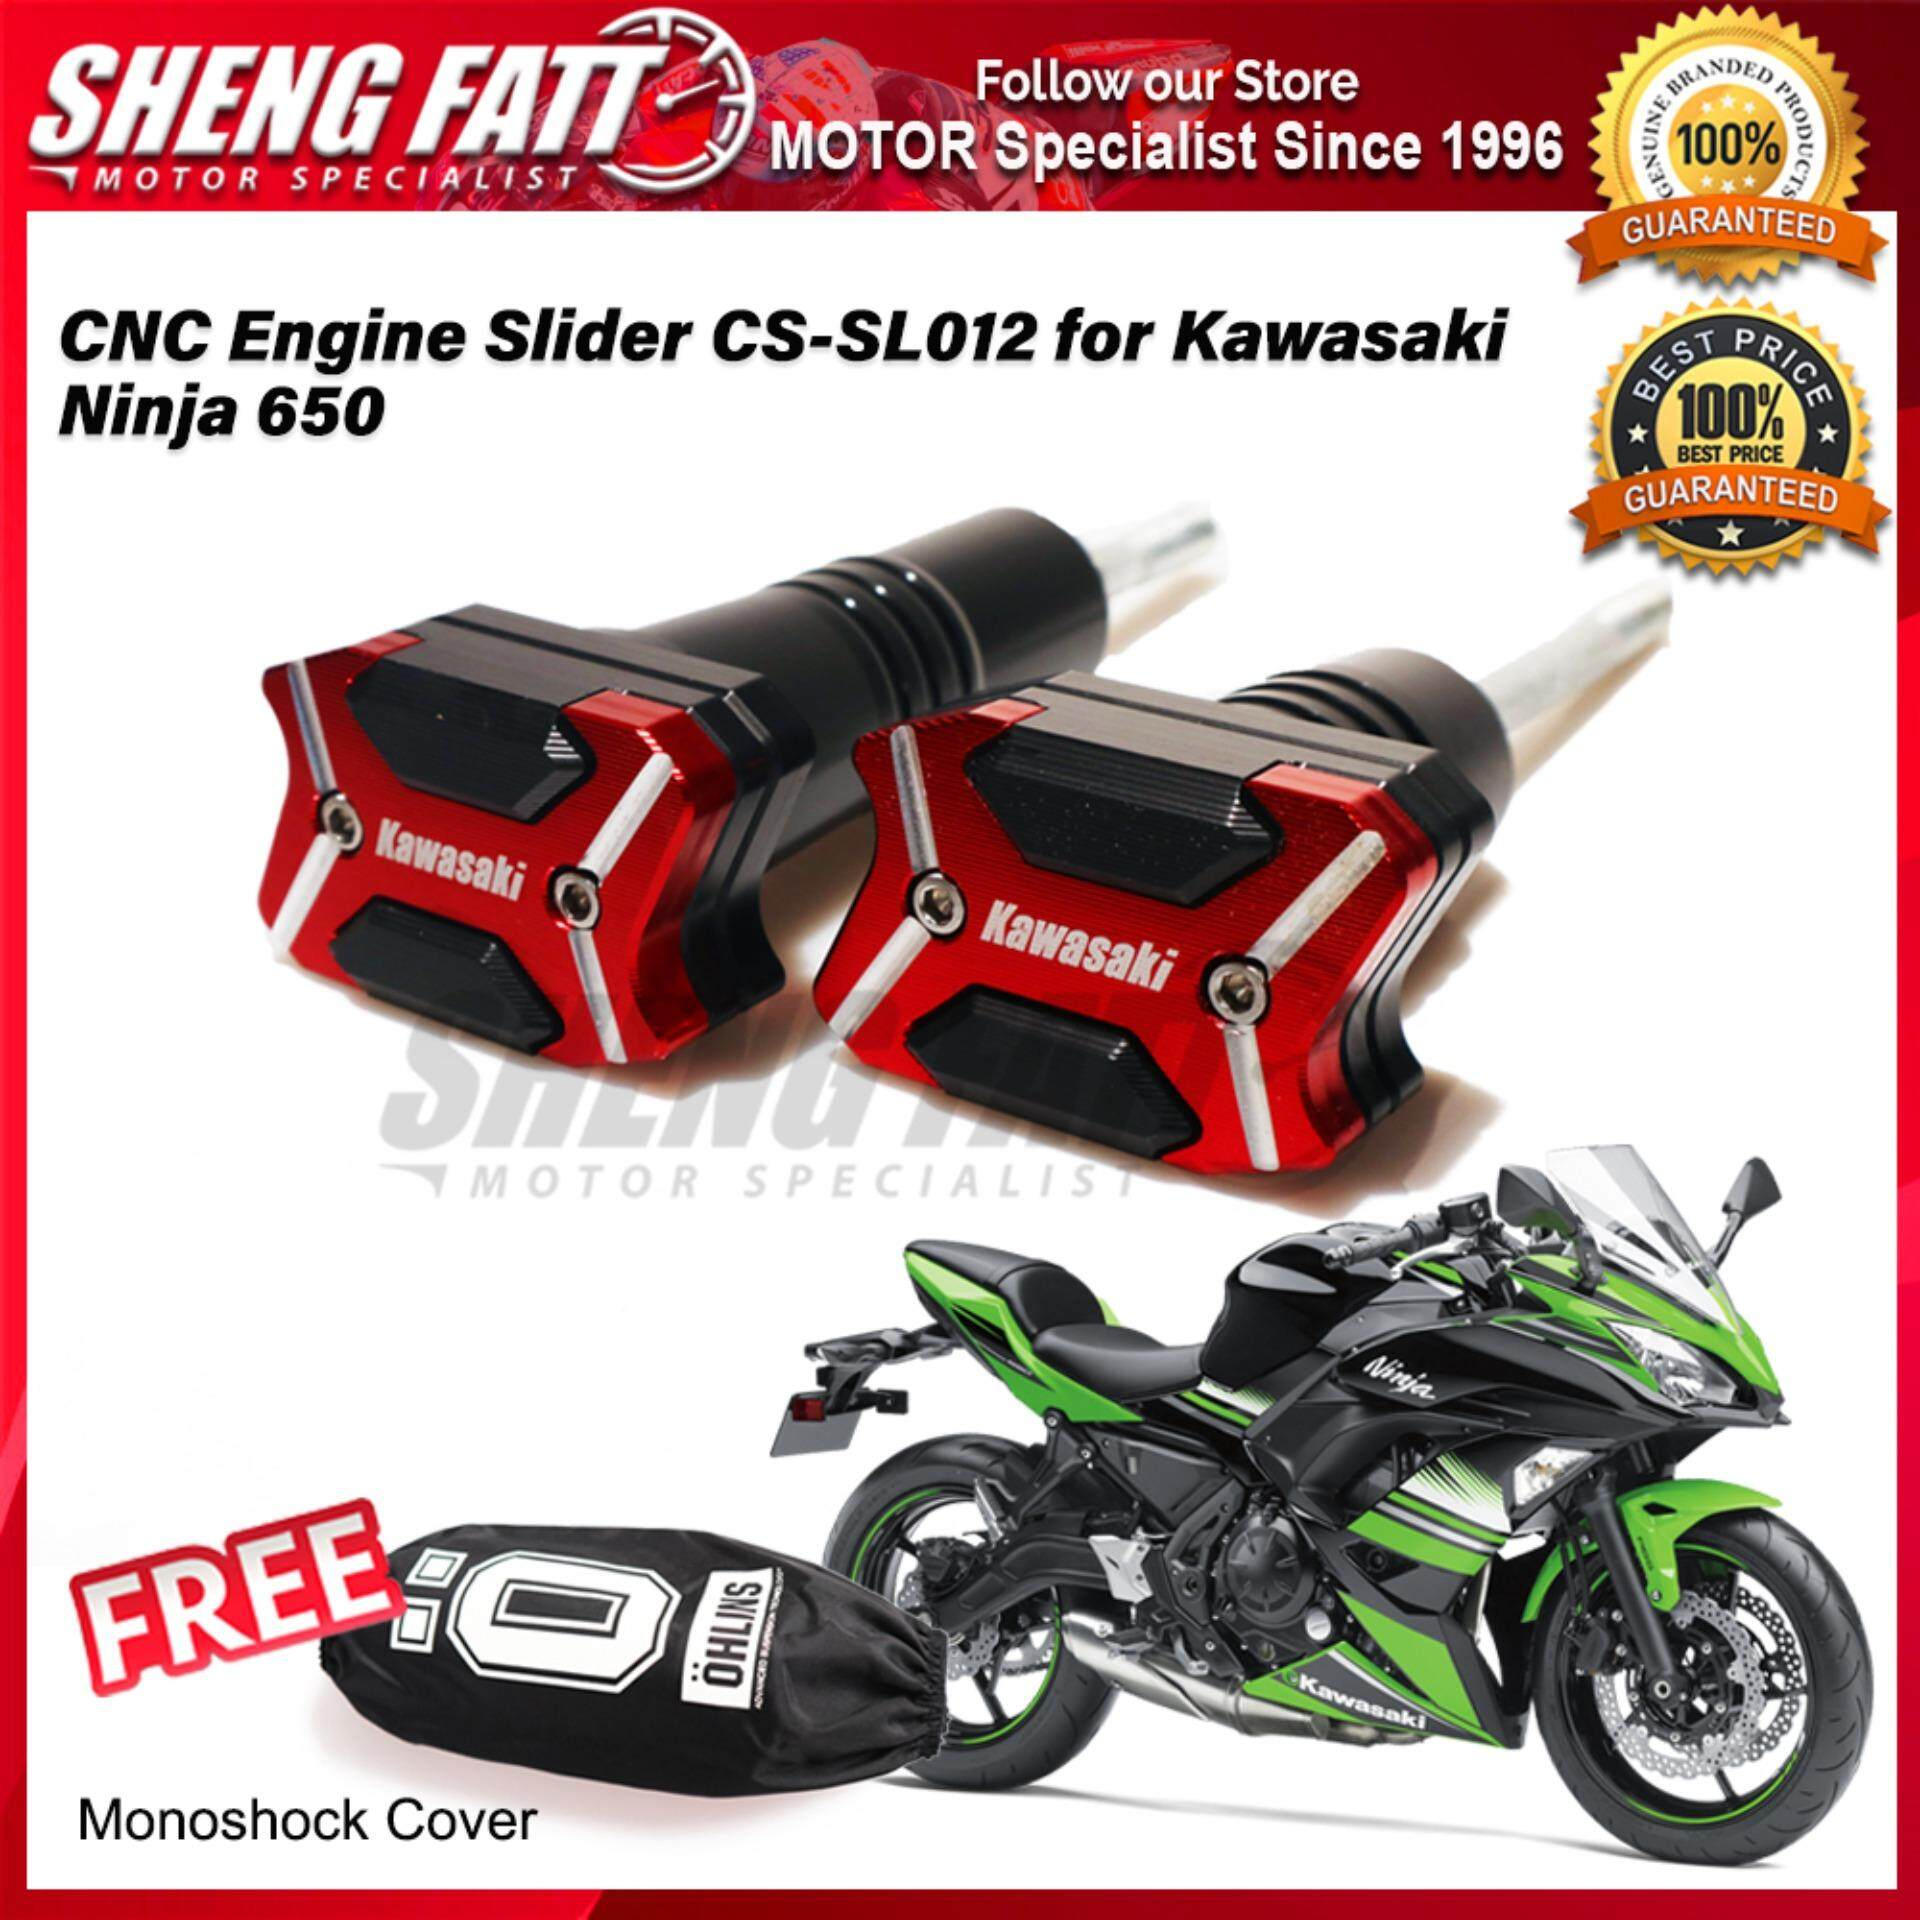 CNC Engine Slider CS-SL012 for Kawasaki Ninja 650 FREE Mono Shock Monoshock Cover